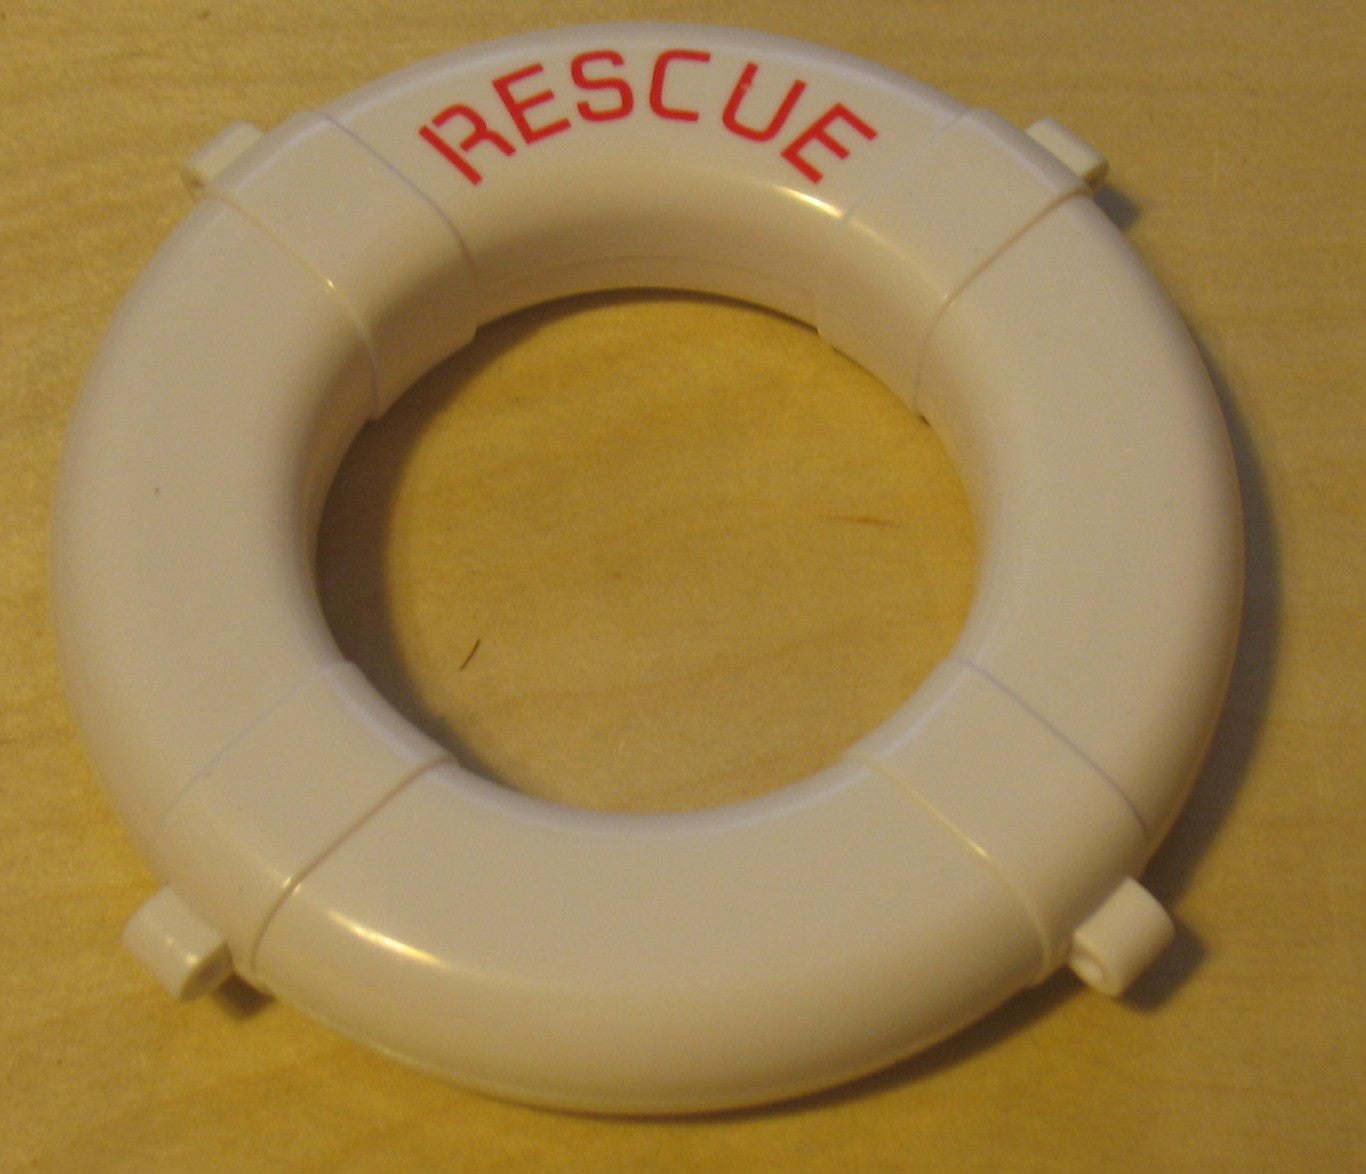 A062 Hasbro GI JOE reissued white marked Life Preserver, brand new unused!